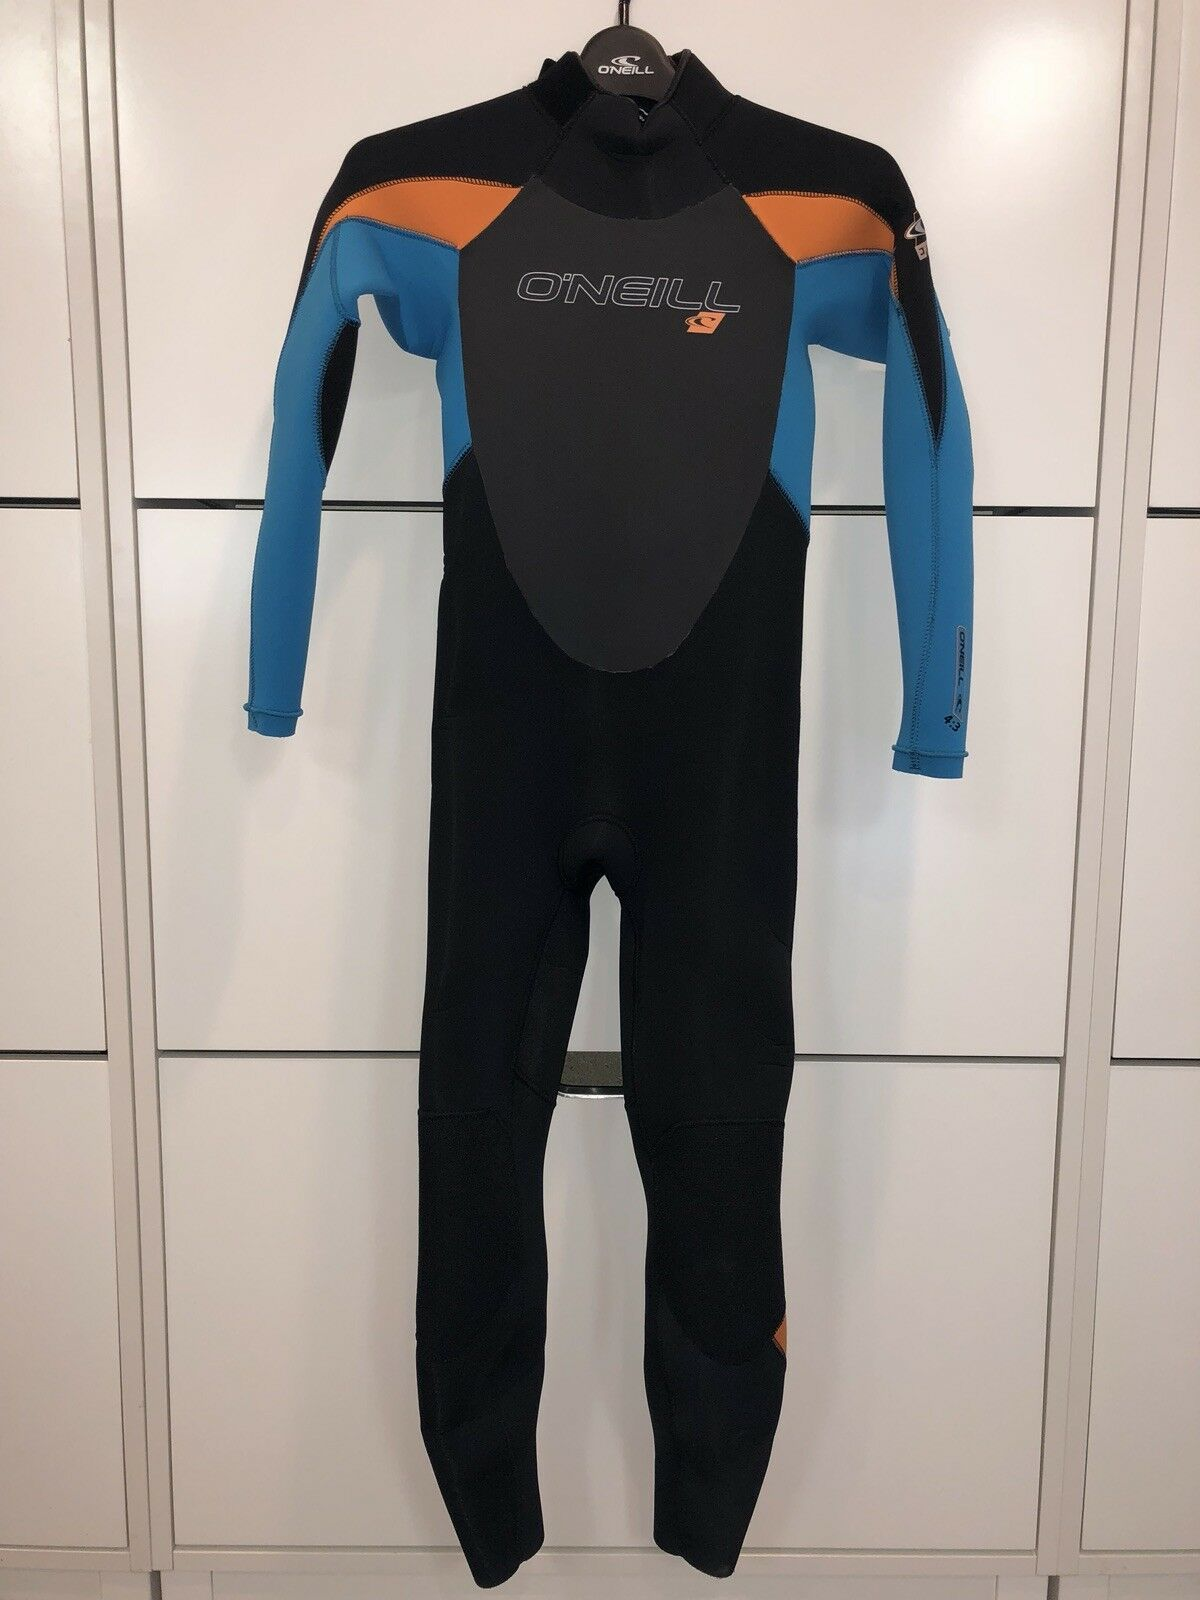 Oneill Youth Wetsuit EPIC II 4 3 - Size 10 (EUC)   FREE SHIPPING